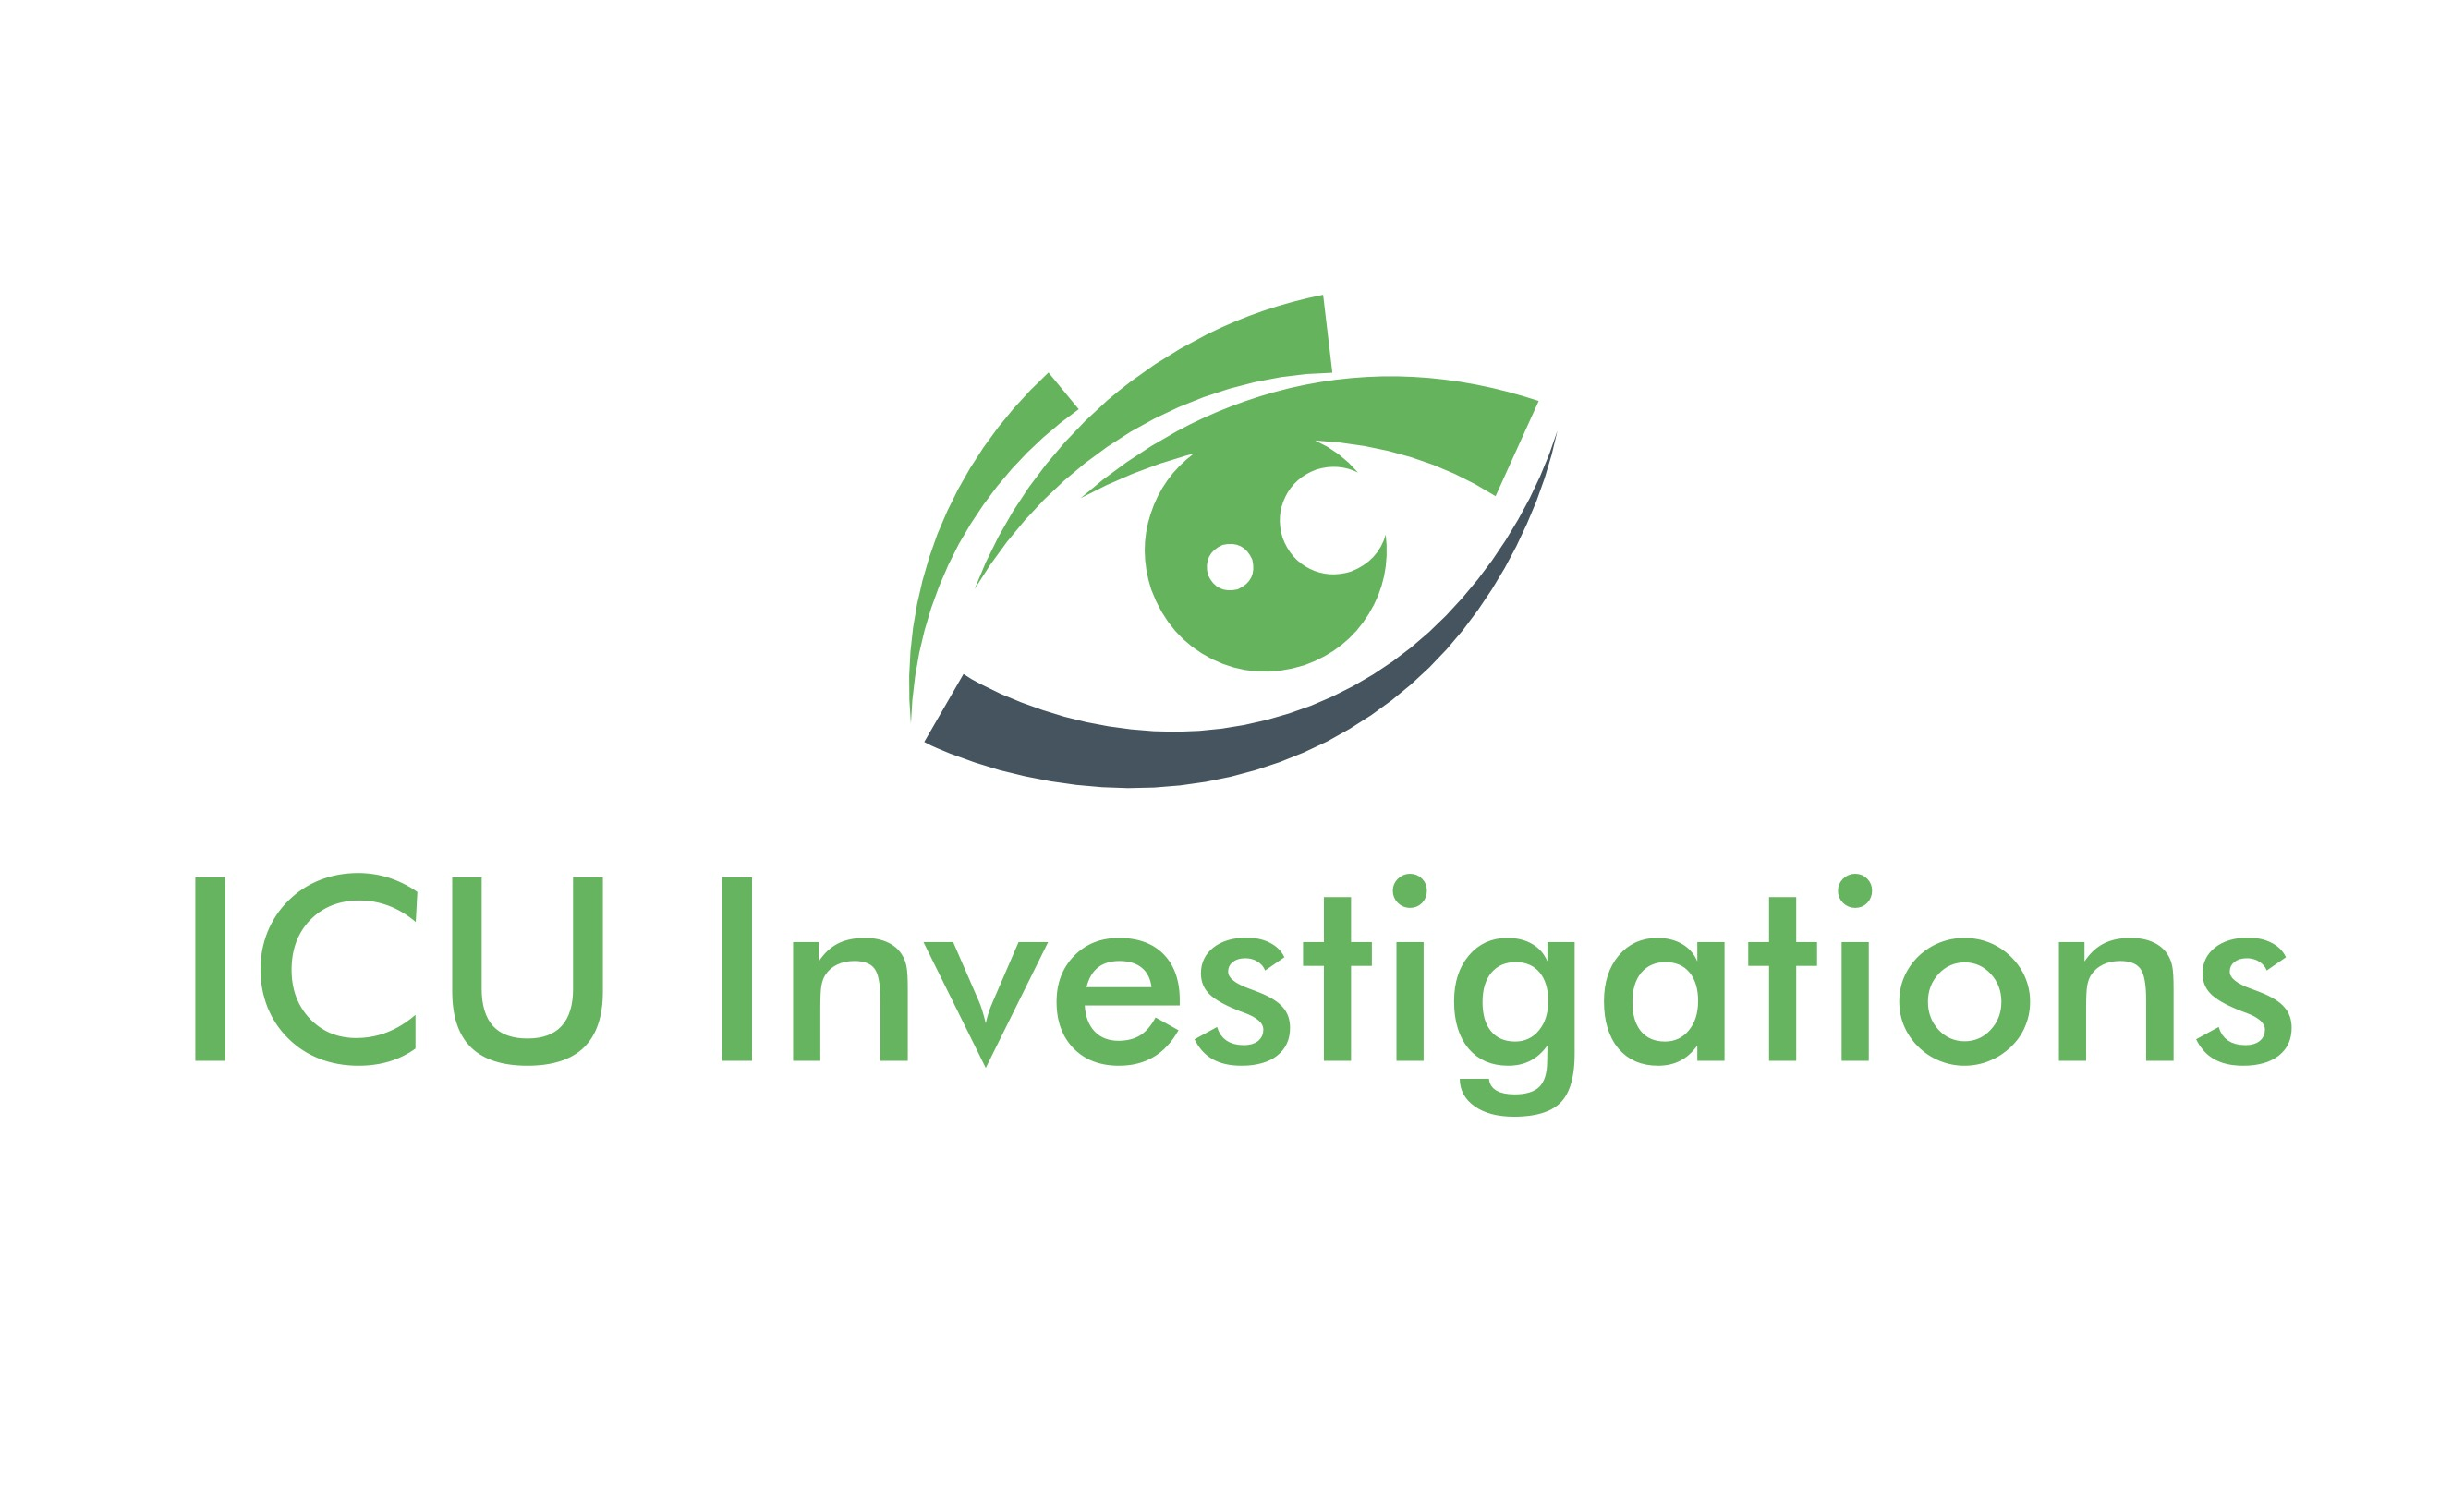 ICU Investigations